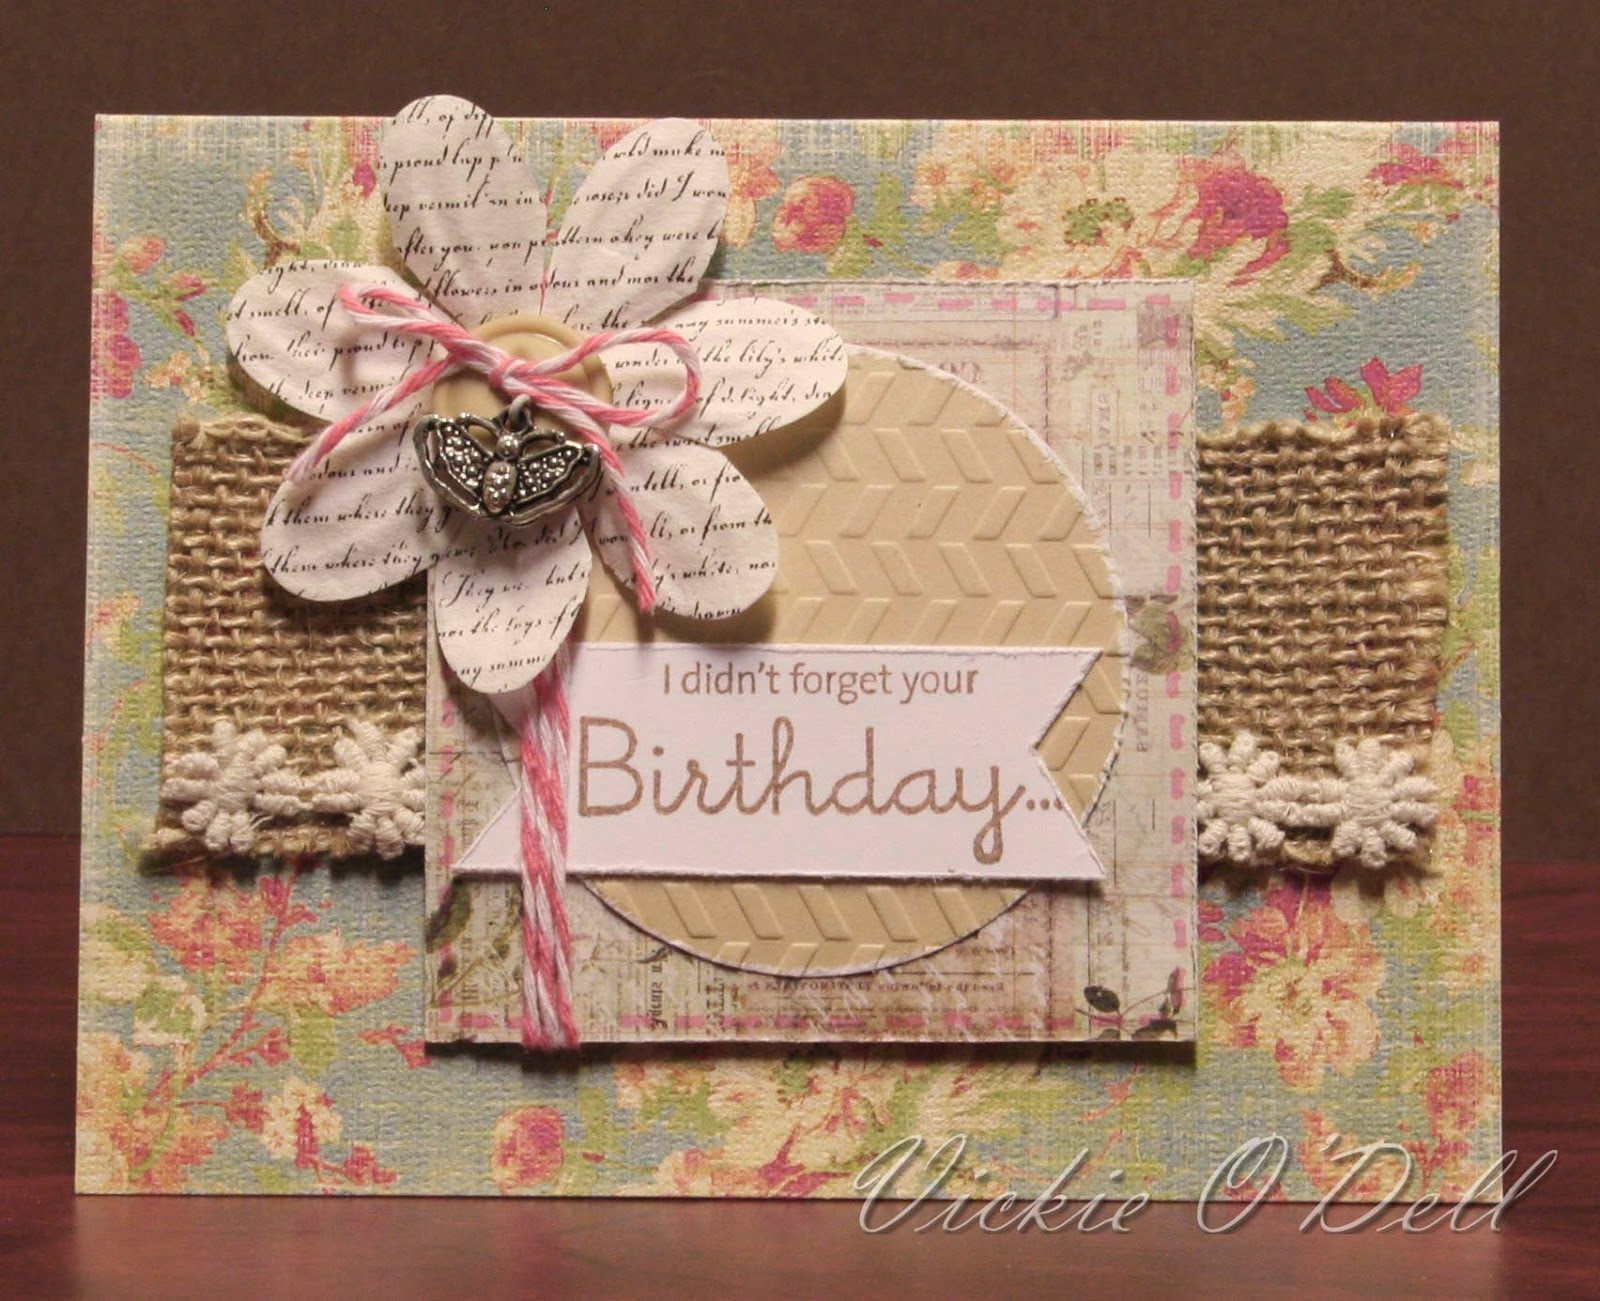 Birthday wishes cards for friend birthday wishes birthday wishes cards for friend m4hsunfo